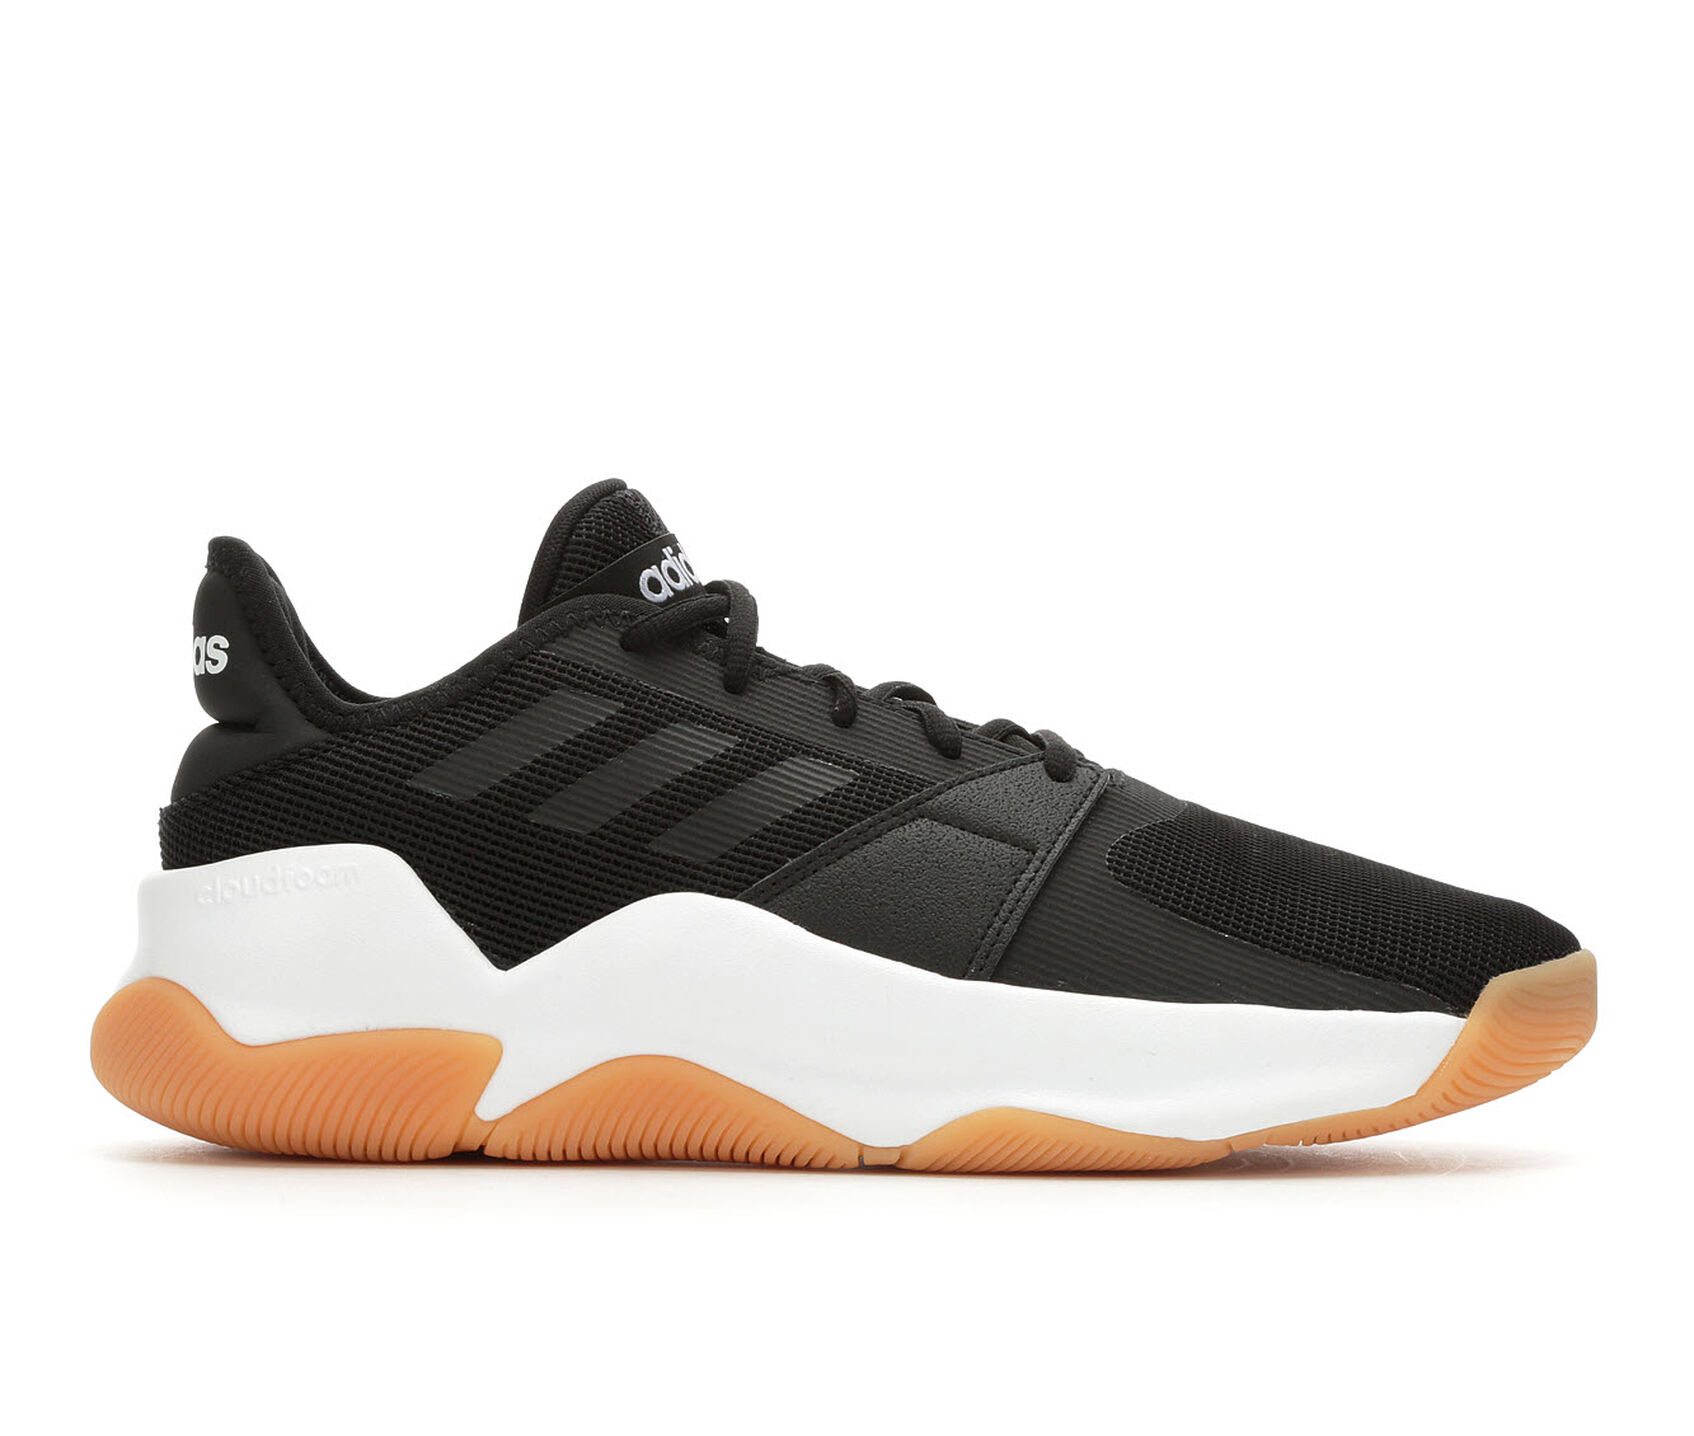 vente chaude en ligne ada02 4b86b Men's Adidas Streetflow Basketball Shoes